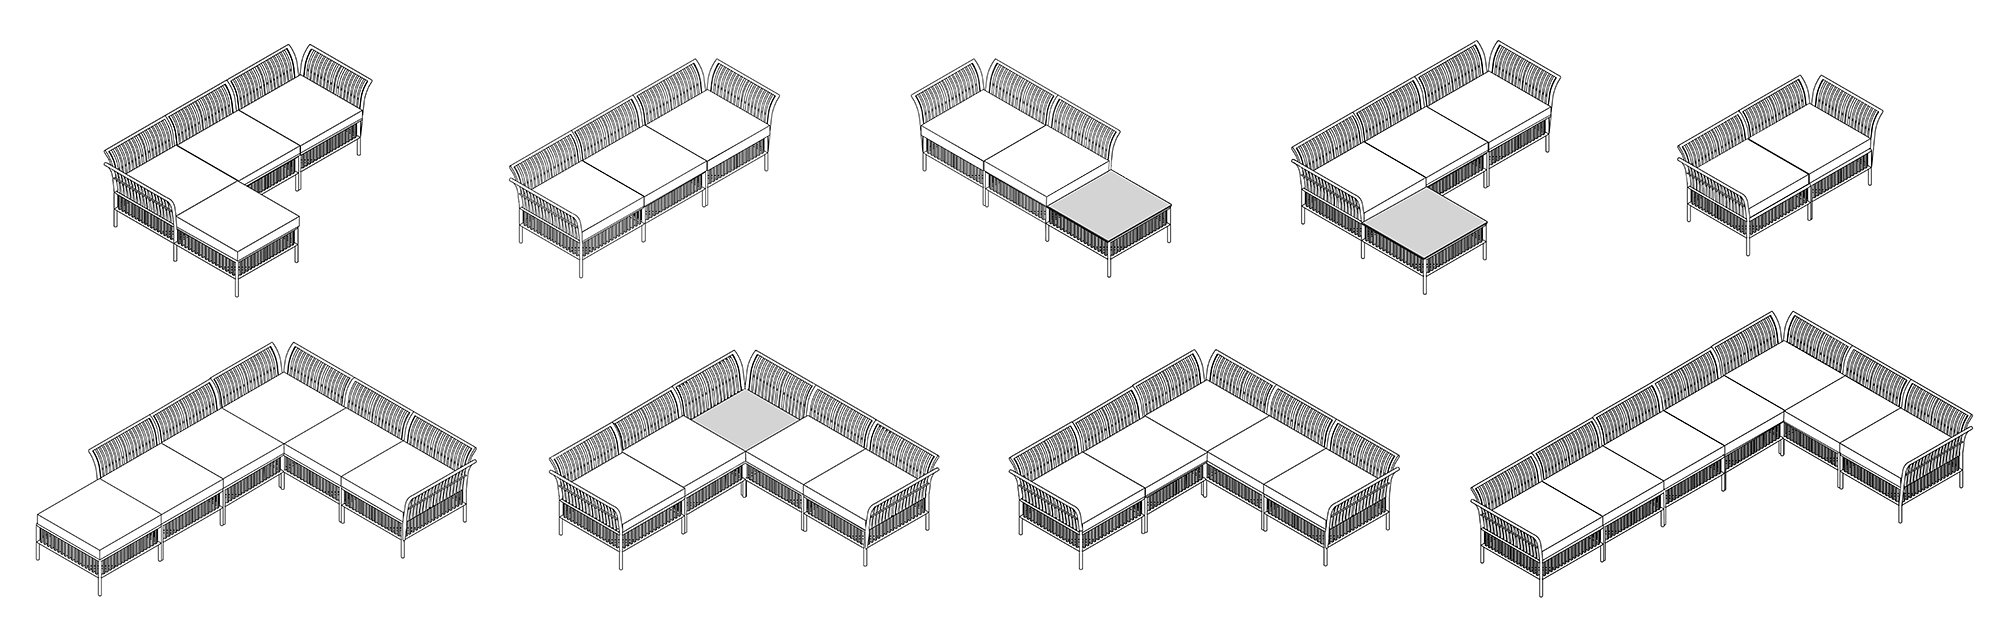 maggie-sectional-examples.jpg